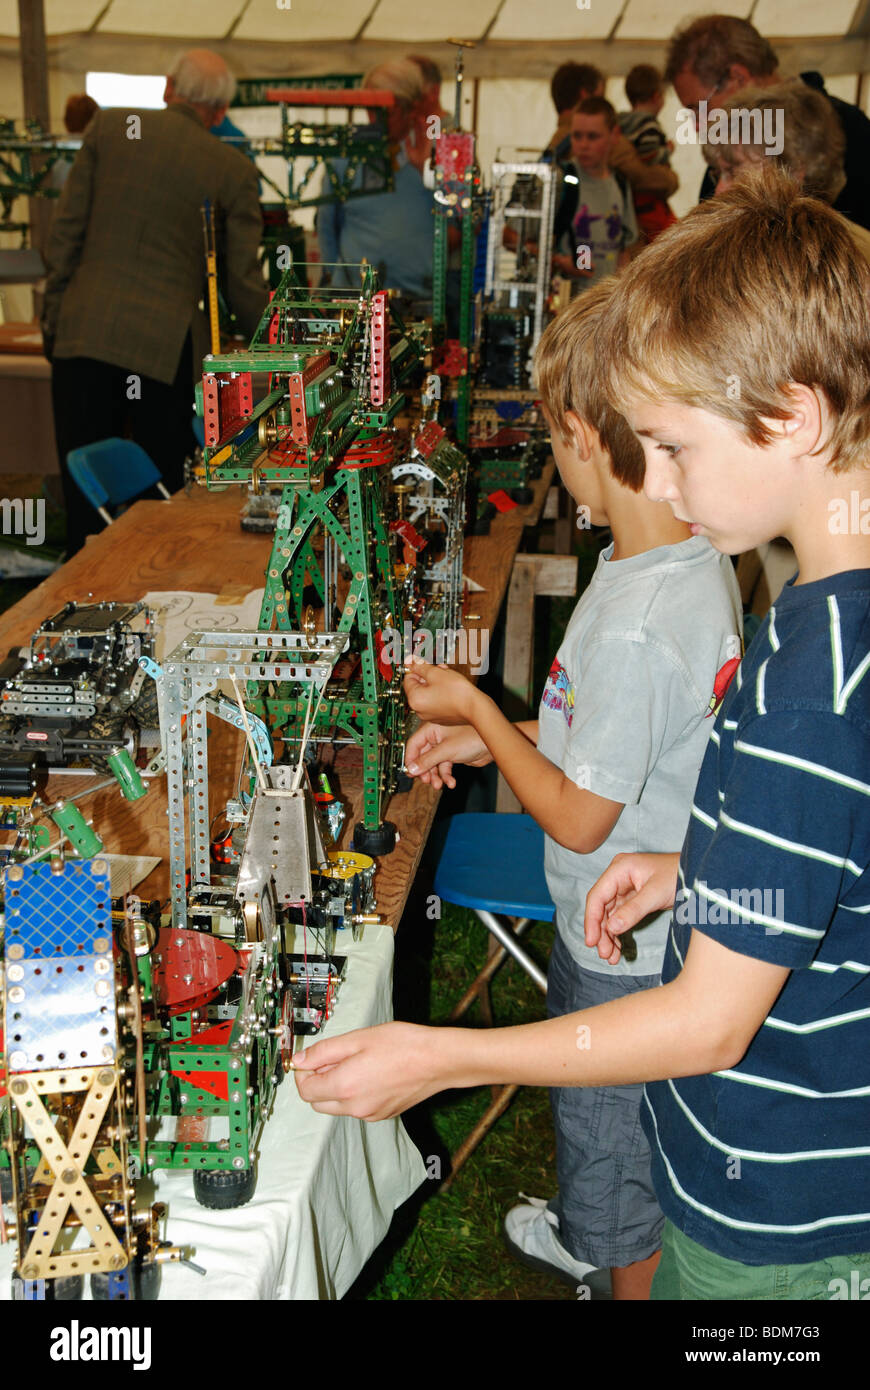 small boys playing with meccano exhibits at a model exhibition, cornwall, uk - Stock Image